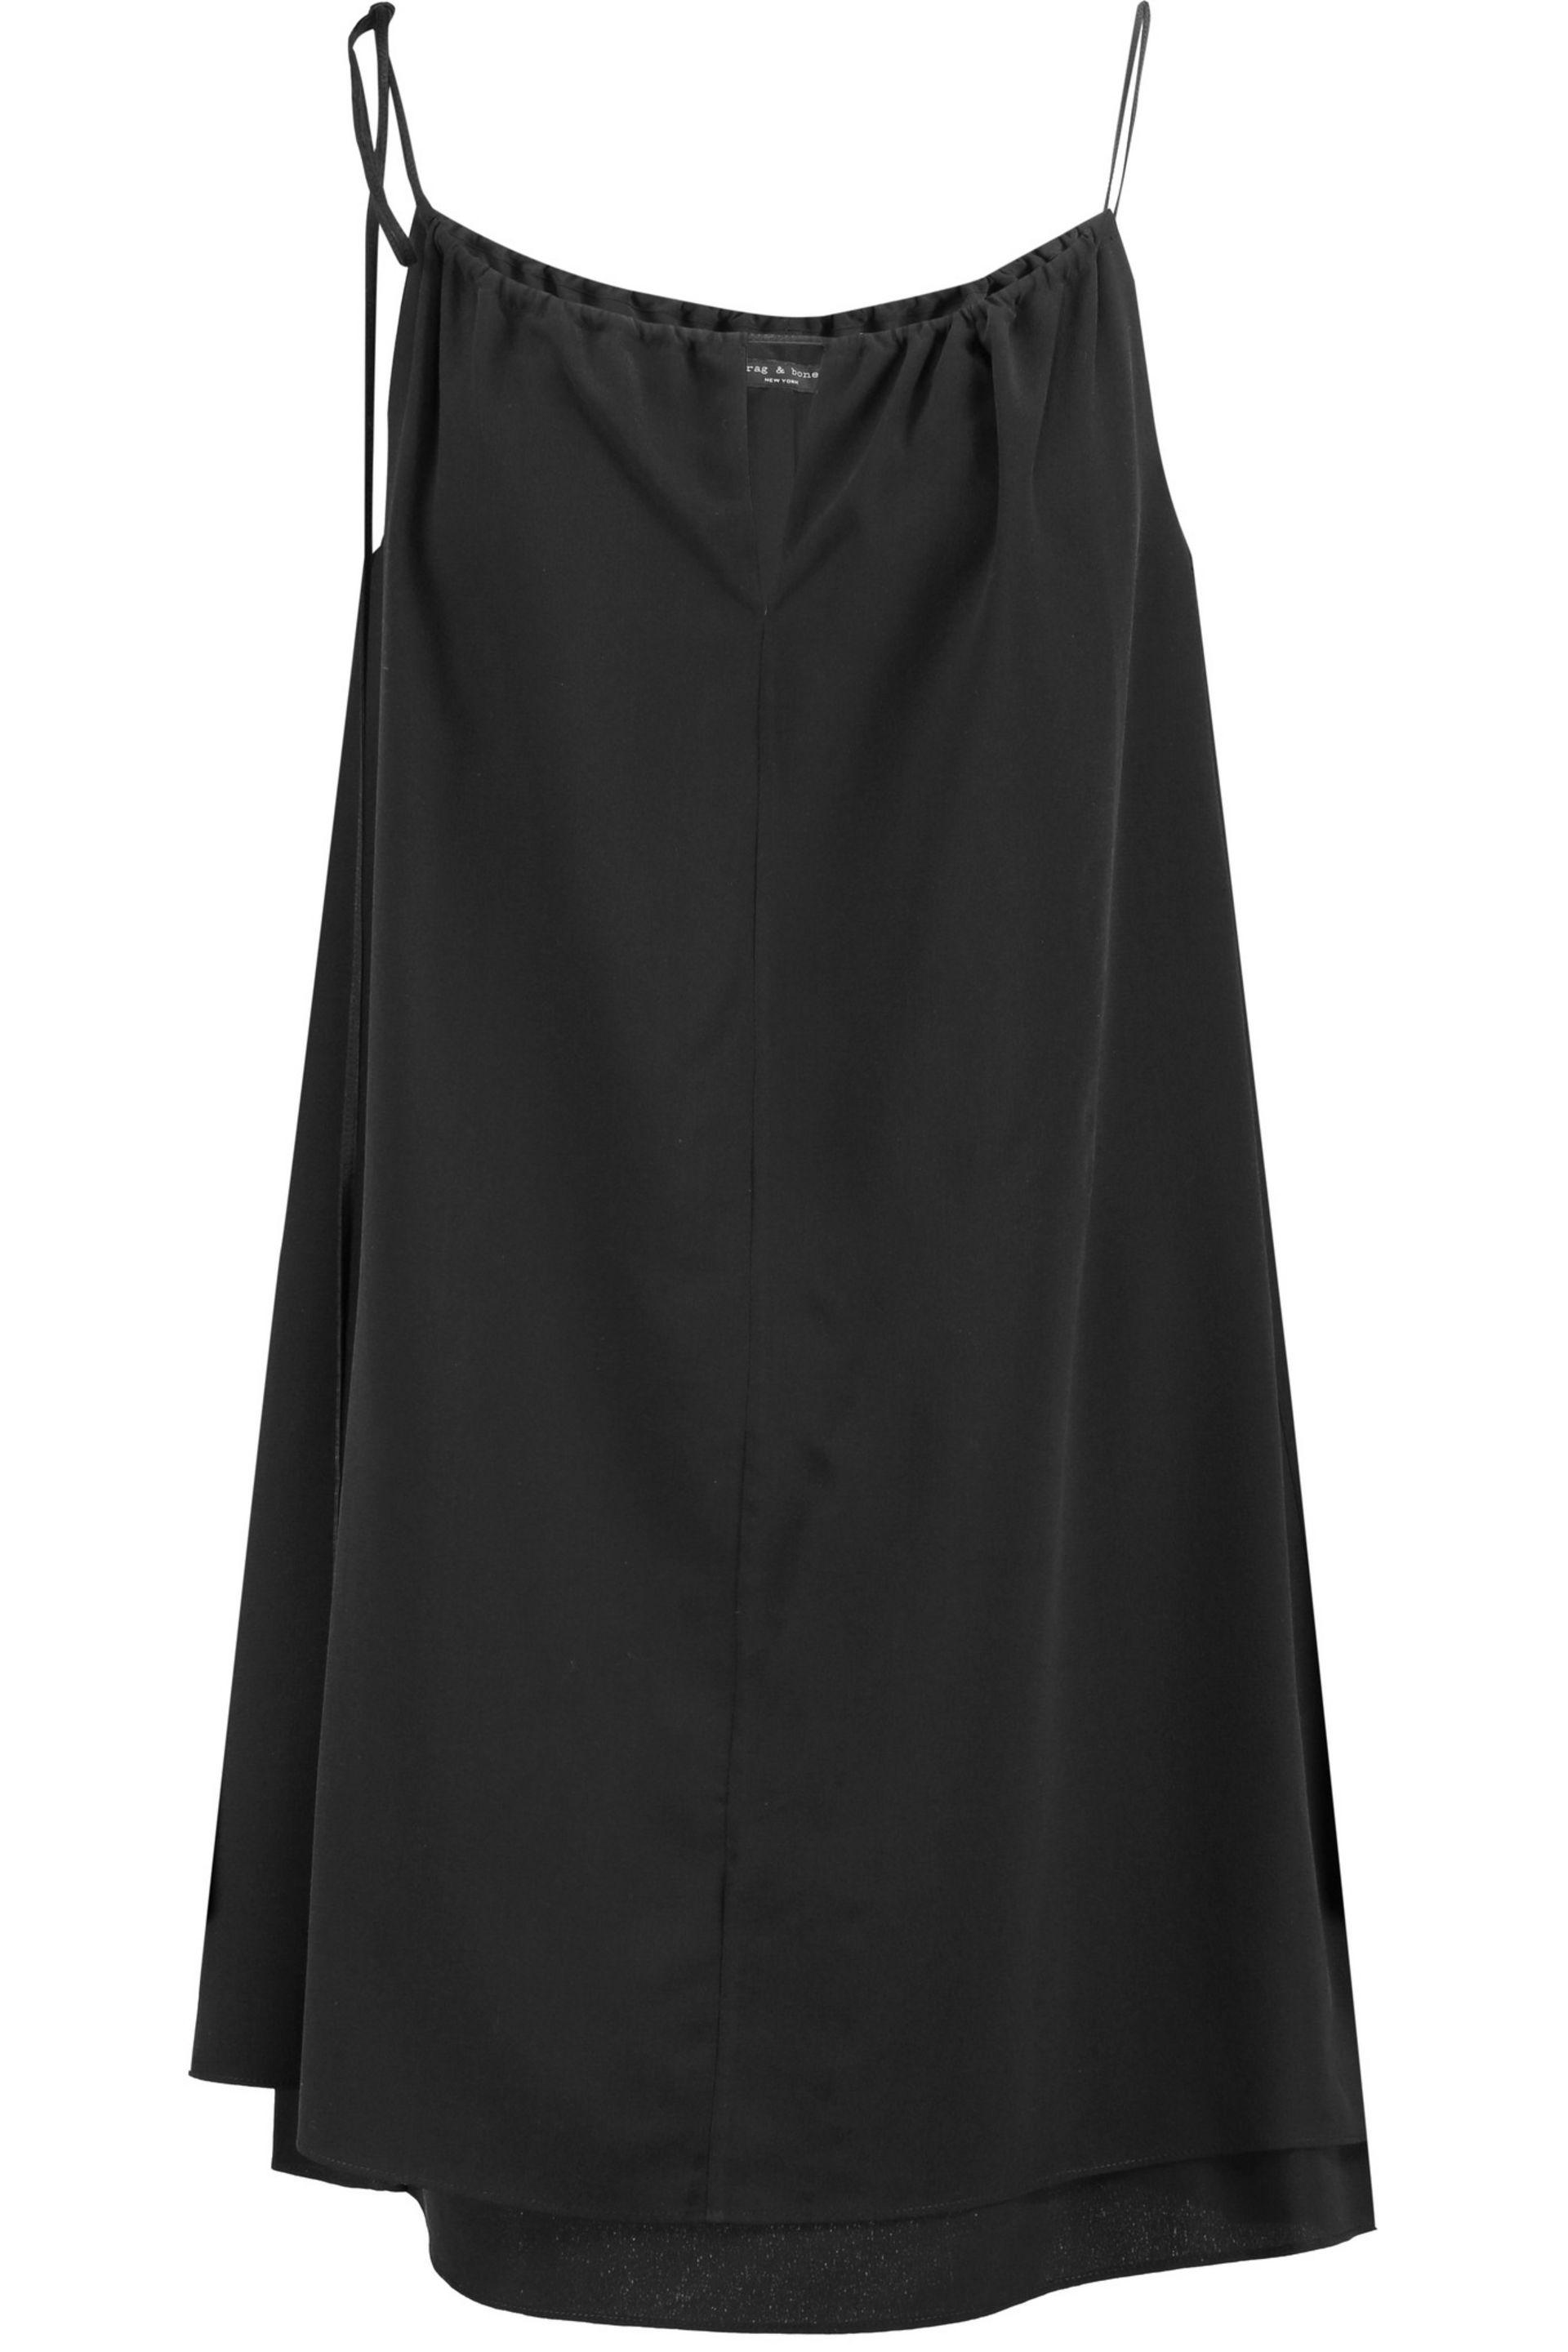 Rag & Bone - Black Samantha Layered Silk Crepe De Chine Mini Dress - Lyst.  View fullscreen